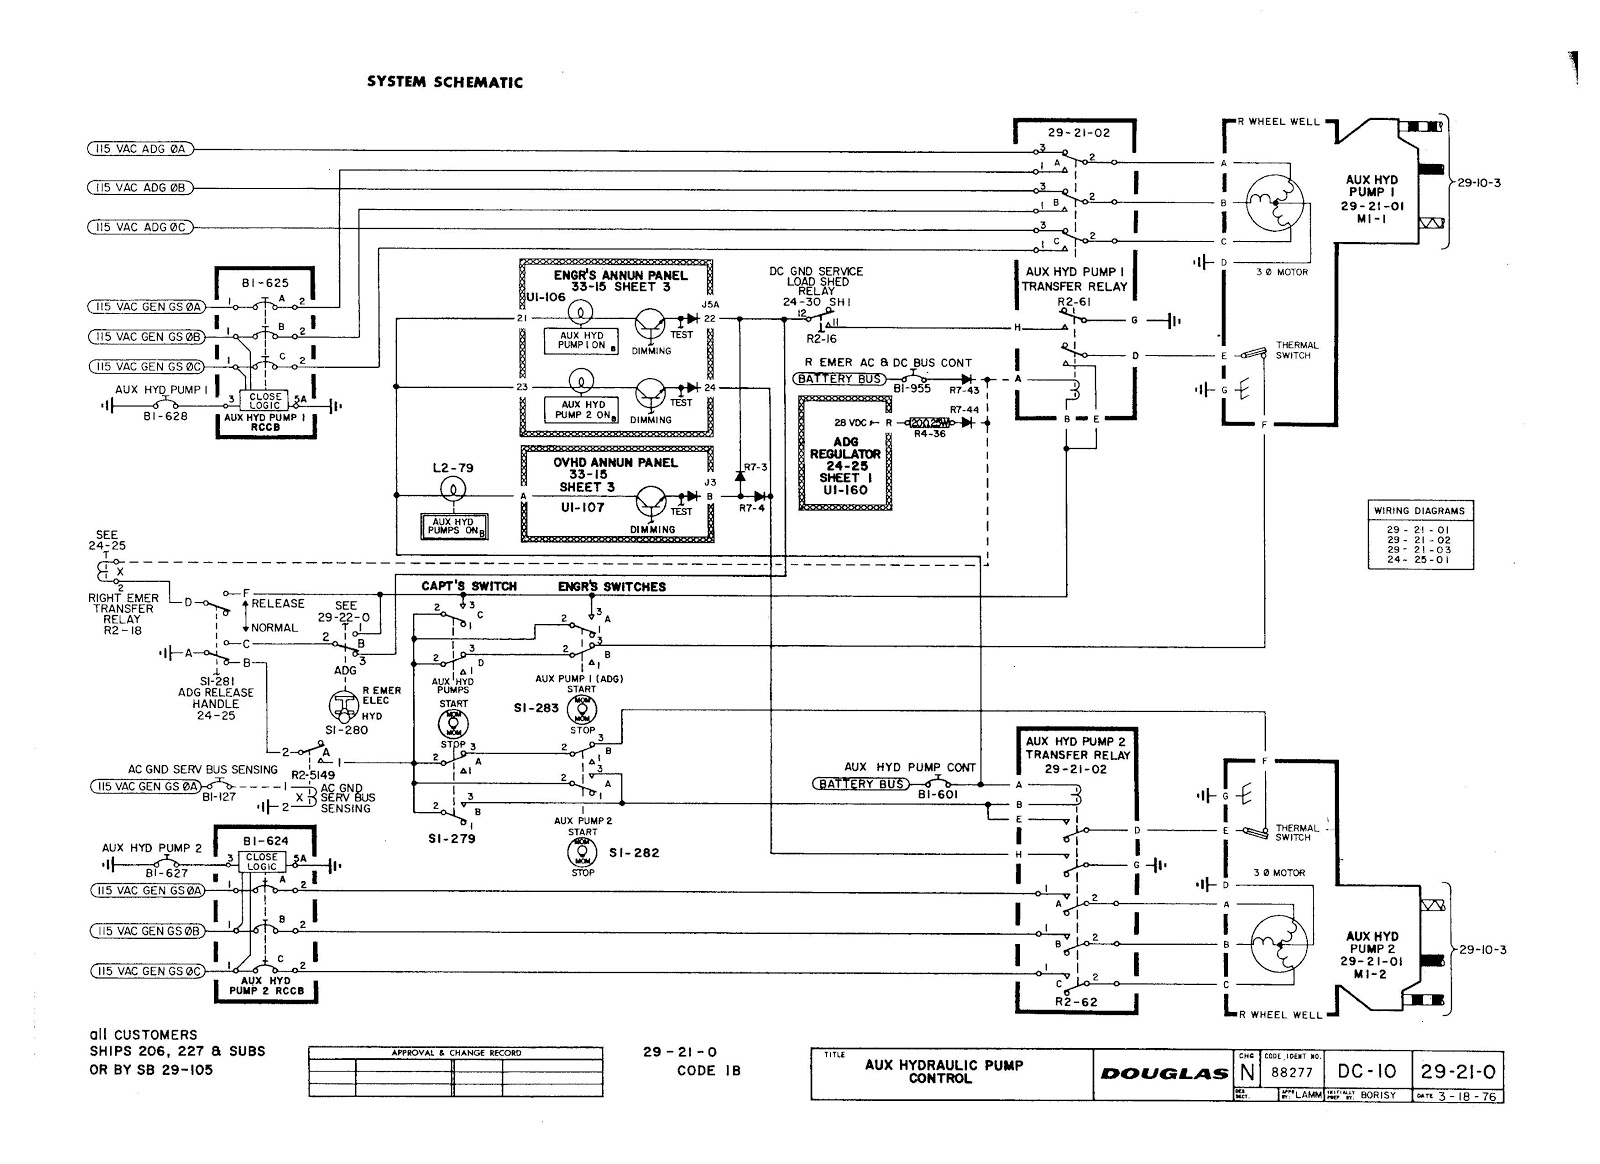 part 66 virtual school aircraft wiring and schematic diagrams aircraft wiring diagram manual definition aircraft wiring diagrams [ 1600 x 1164 Pixel ]